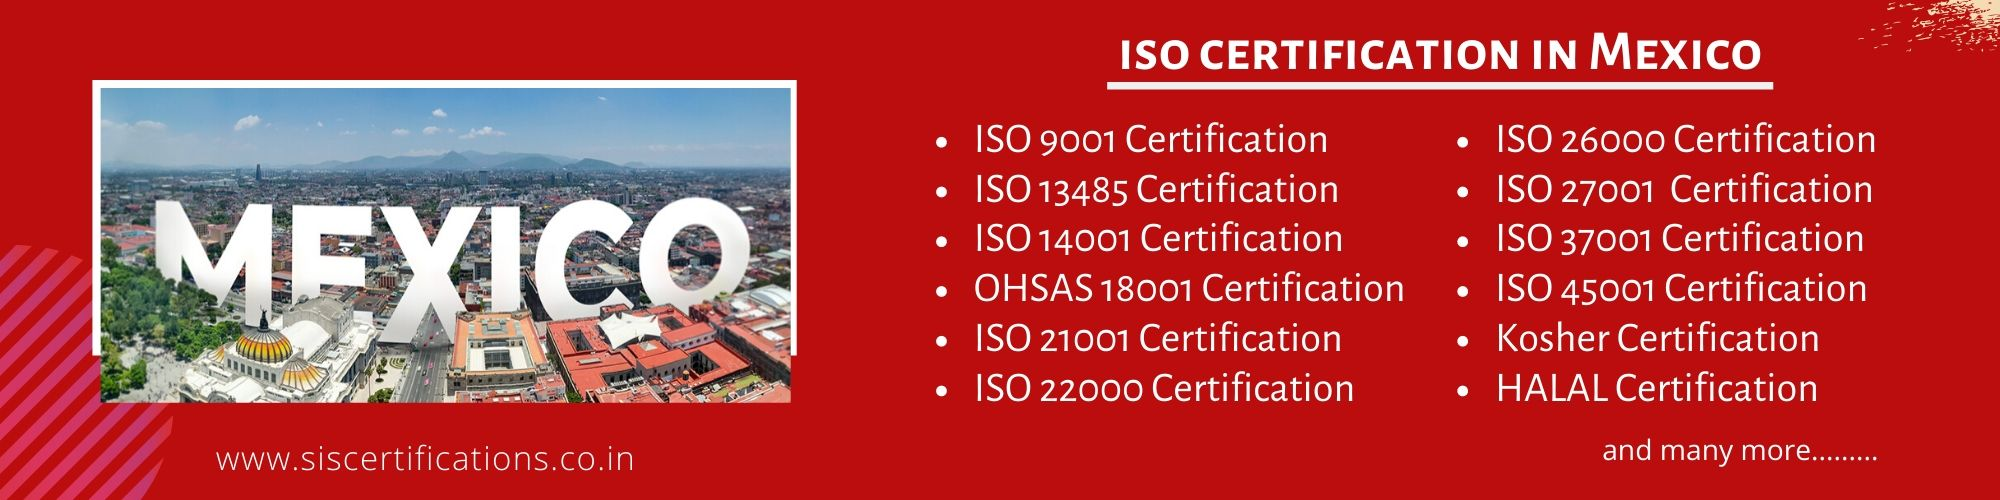 ISO Certification in Mexico